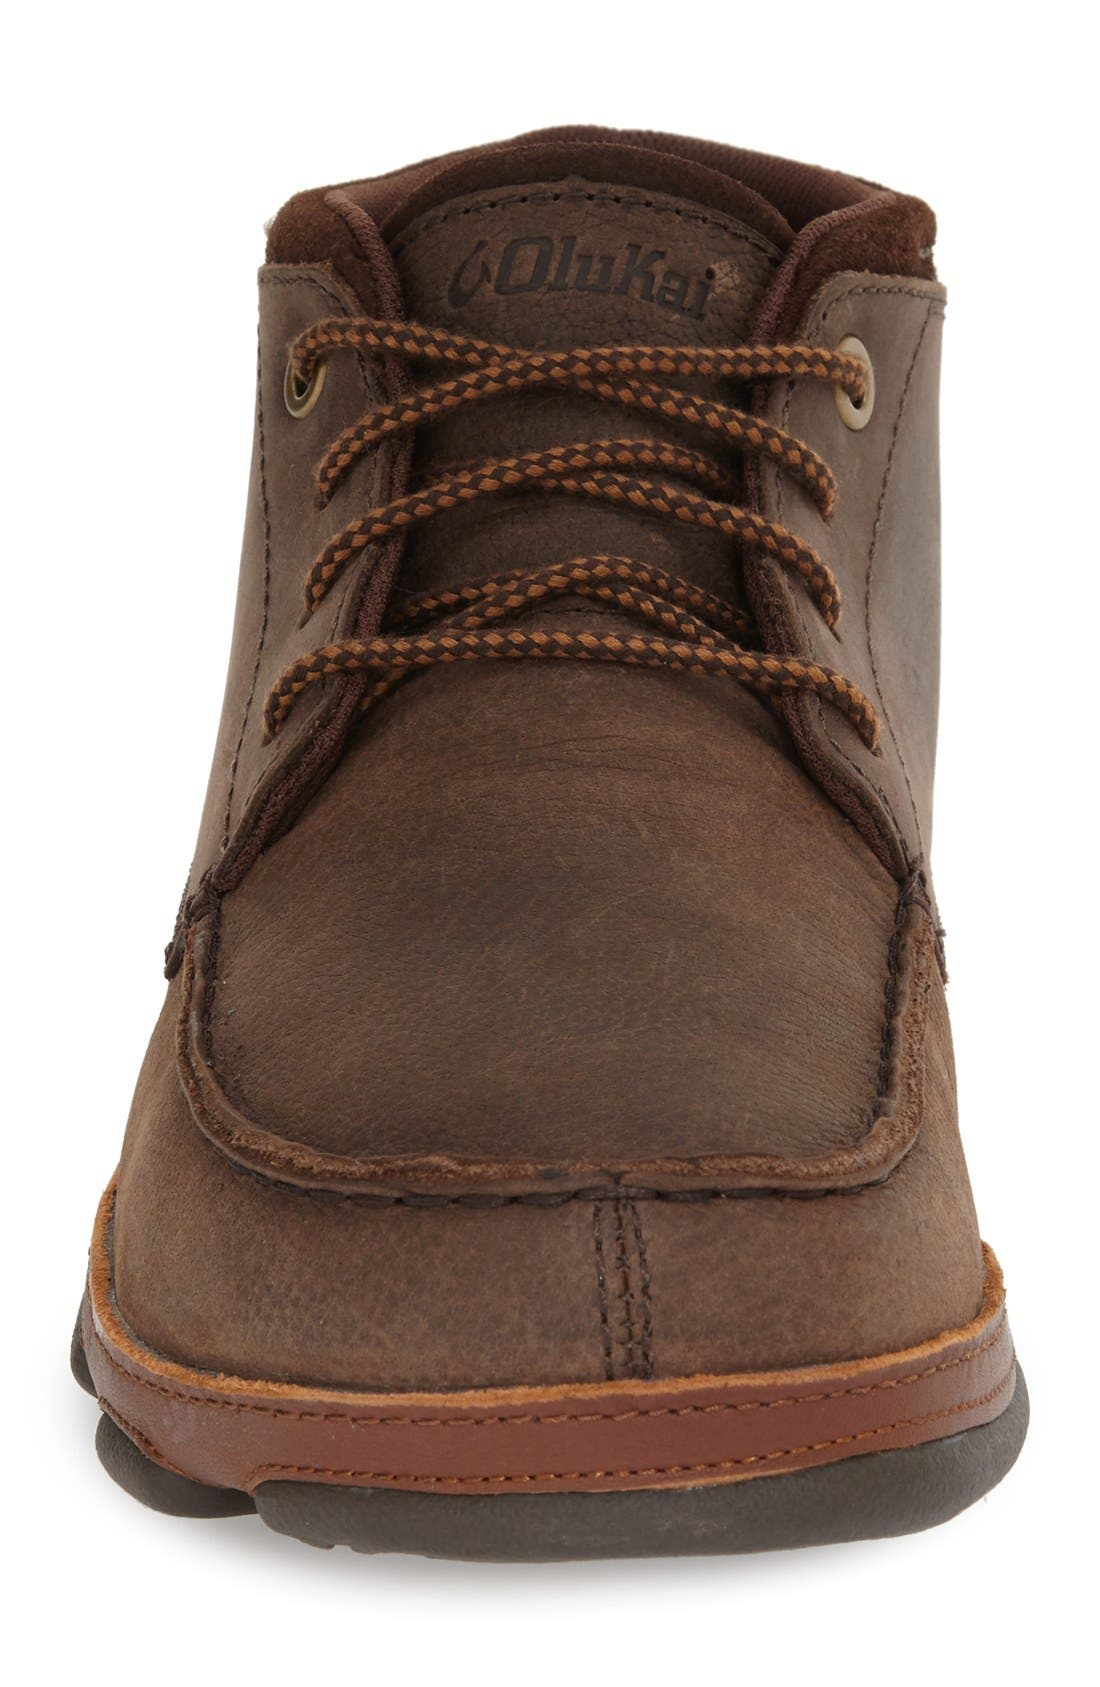 'Hamakua' Moc Toe Boot,                             Alternate thumbnail 3, color,                             DARK WOOD/ TOFFEE LEATHER